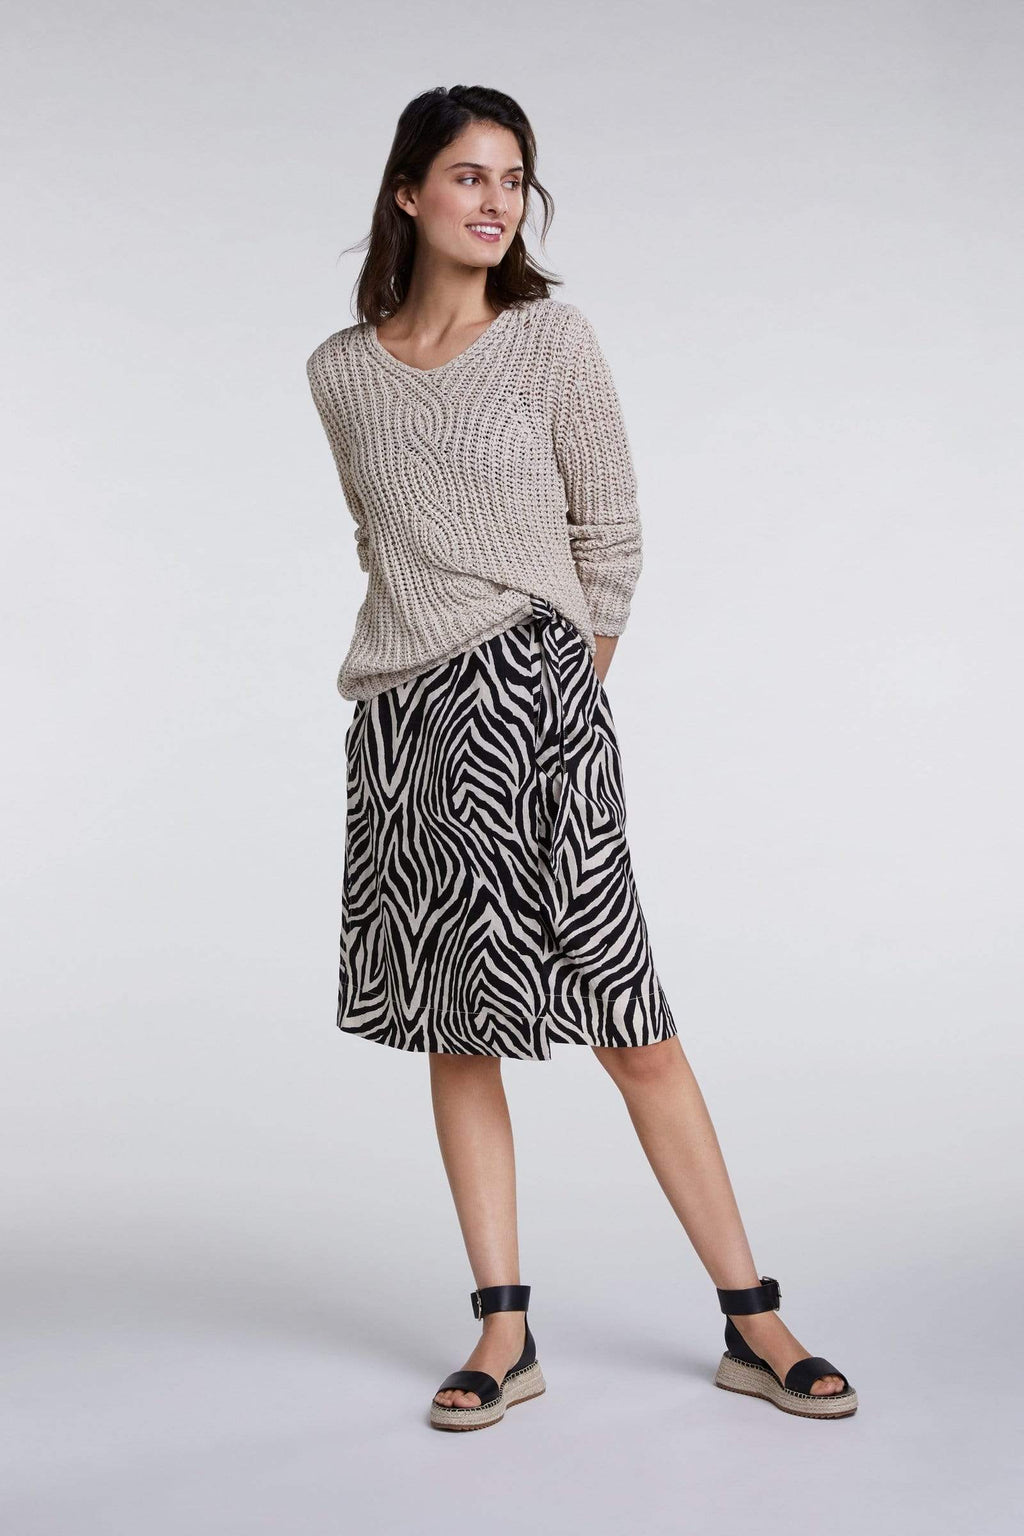 Oui Skirts Oui Black and Beige Linen Skirt 0068932 izzi-of-baslow